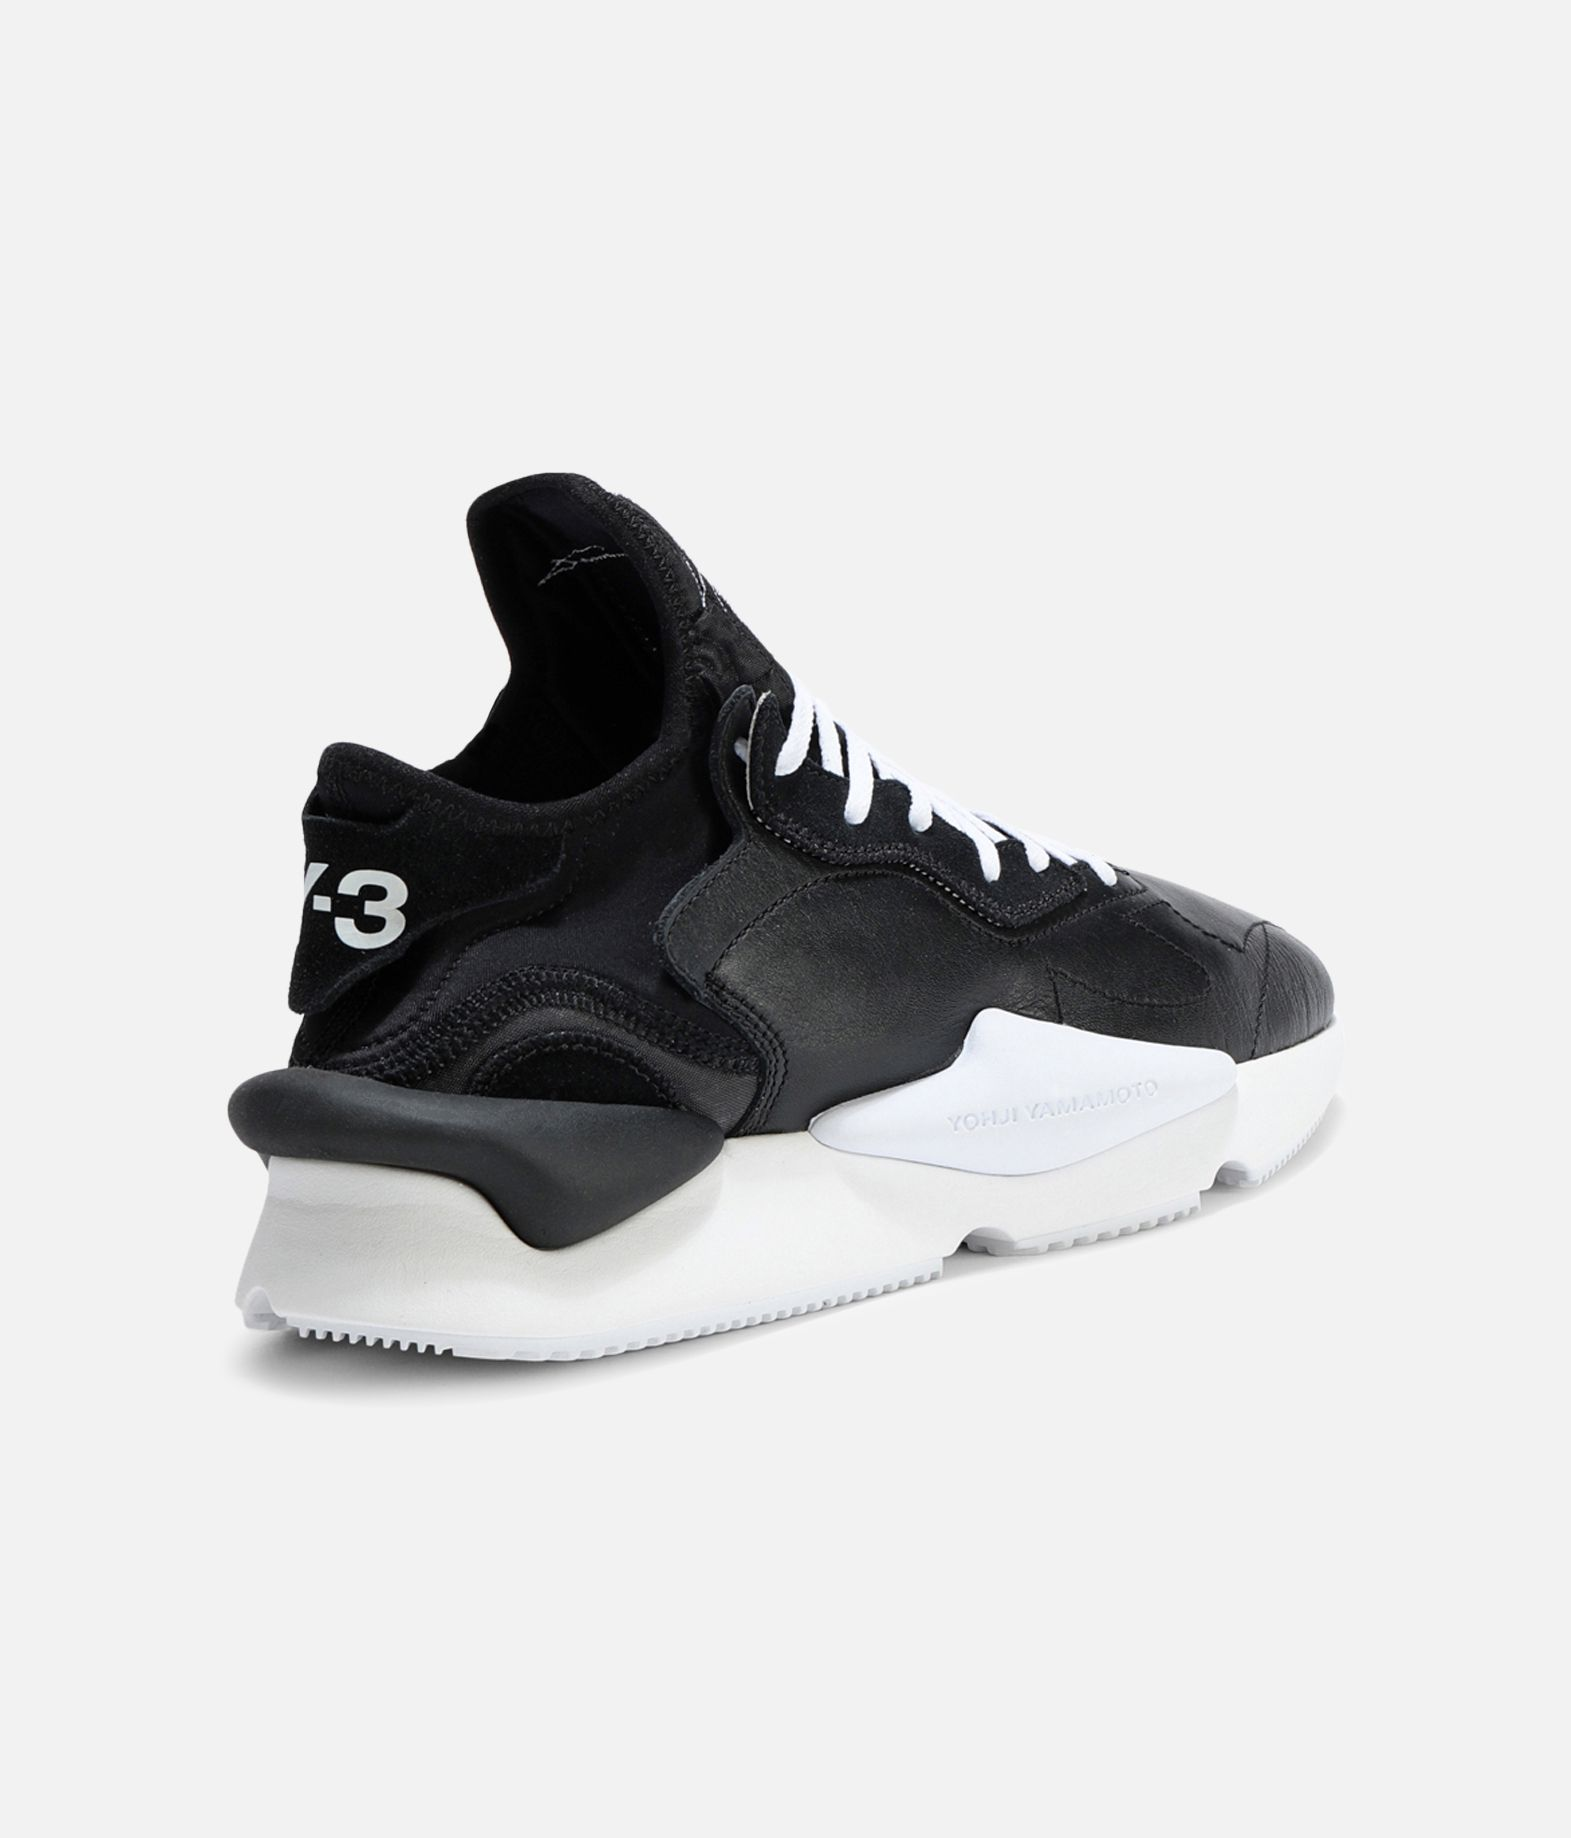 Y-3 Y-3 Kaiwa High-top sneakers E d